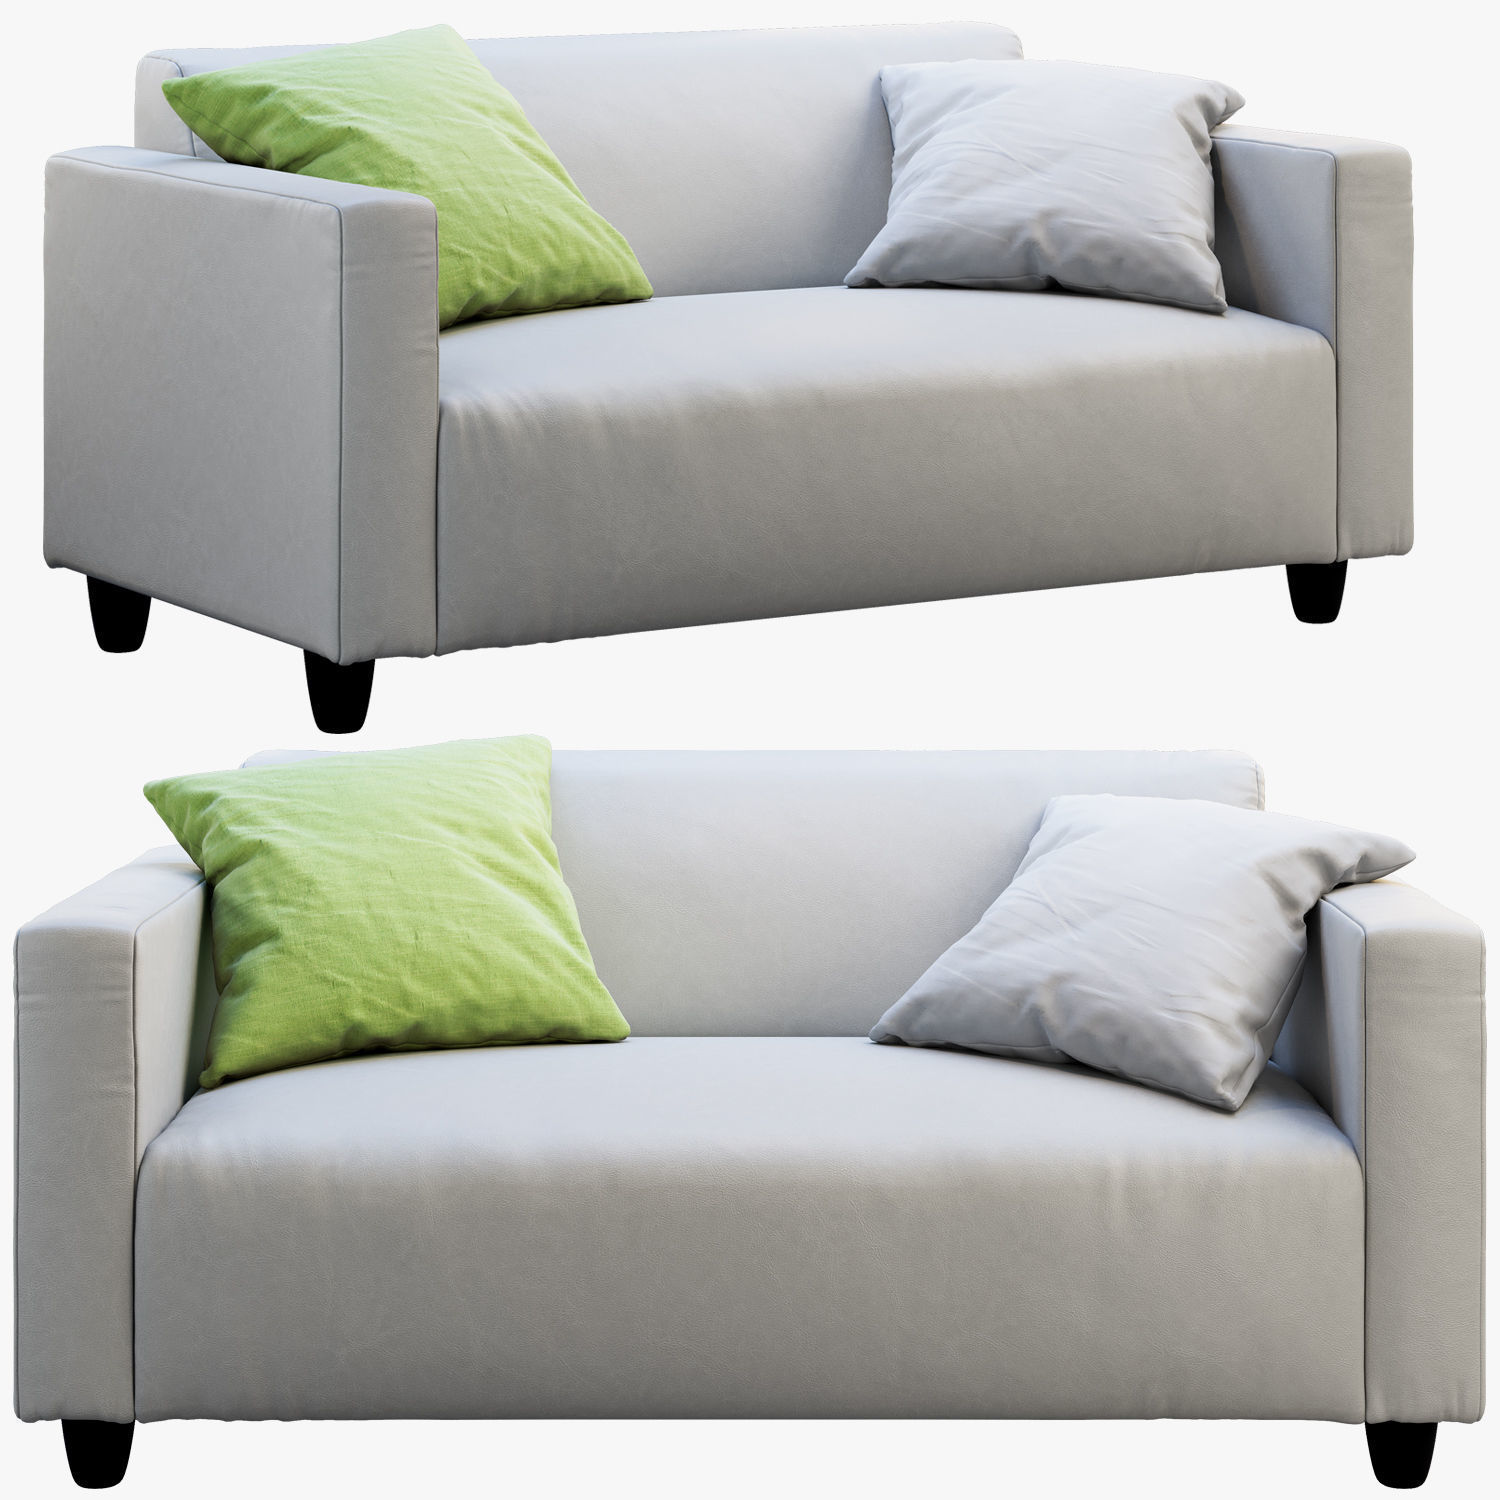 Magnificent Ikea Klubu Leather Sofa 3D Model Onthecornerstone Fun Painted Chair Ideas Images Onthecornerstoneorg